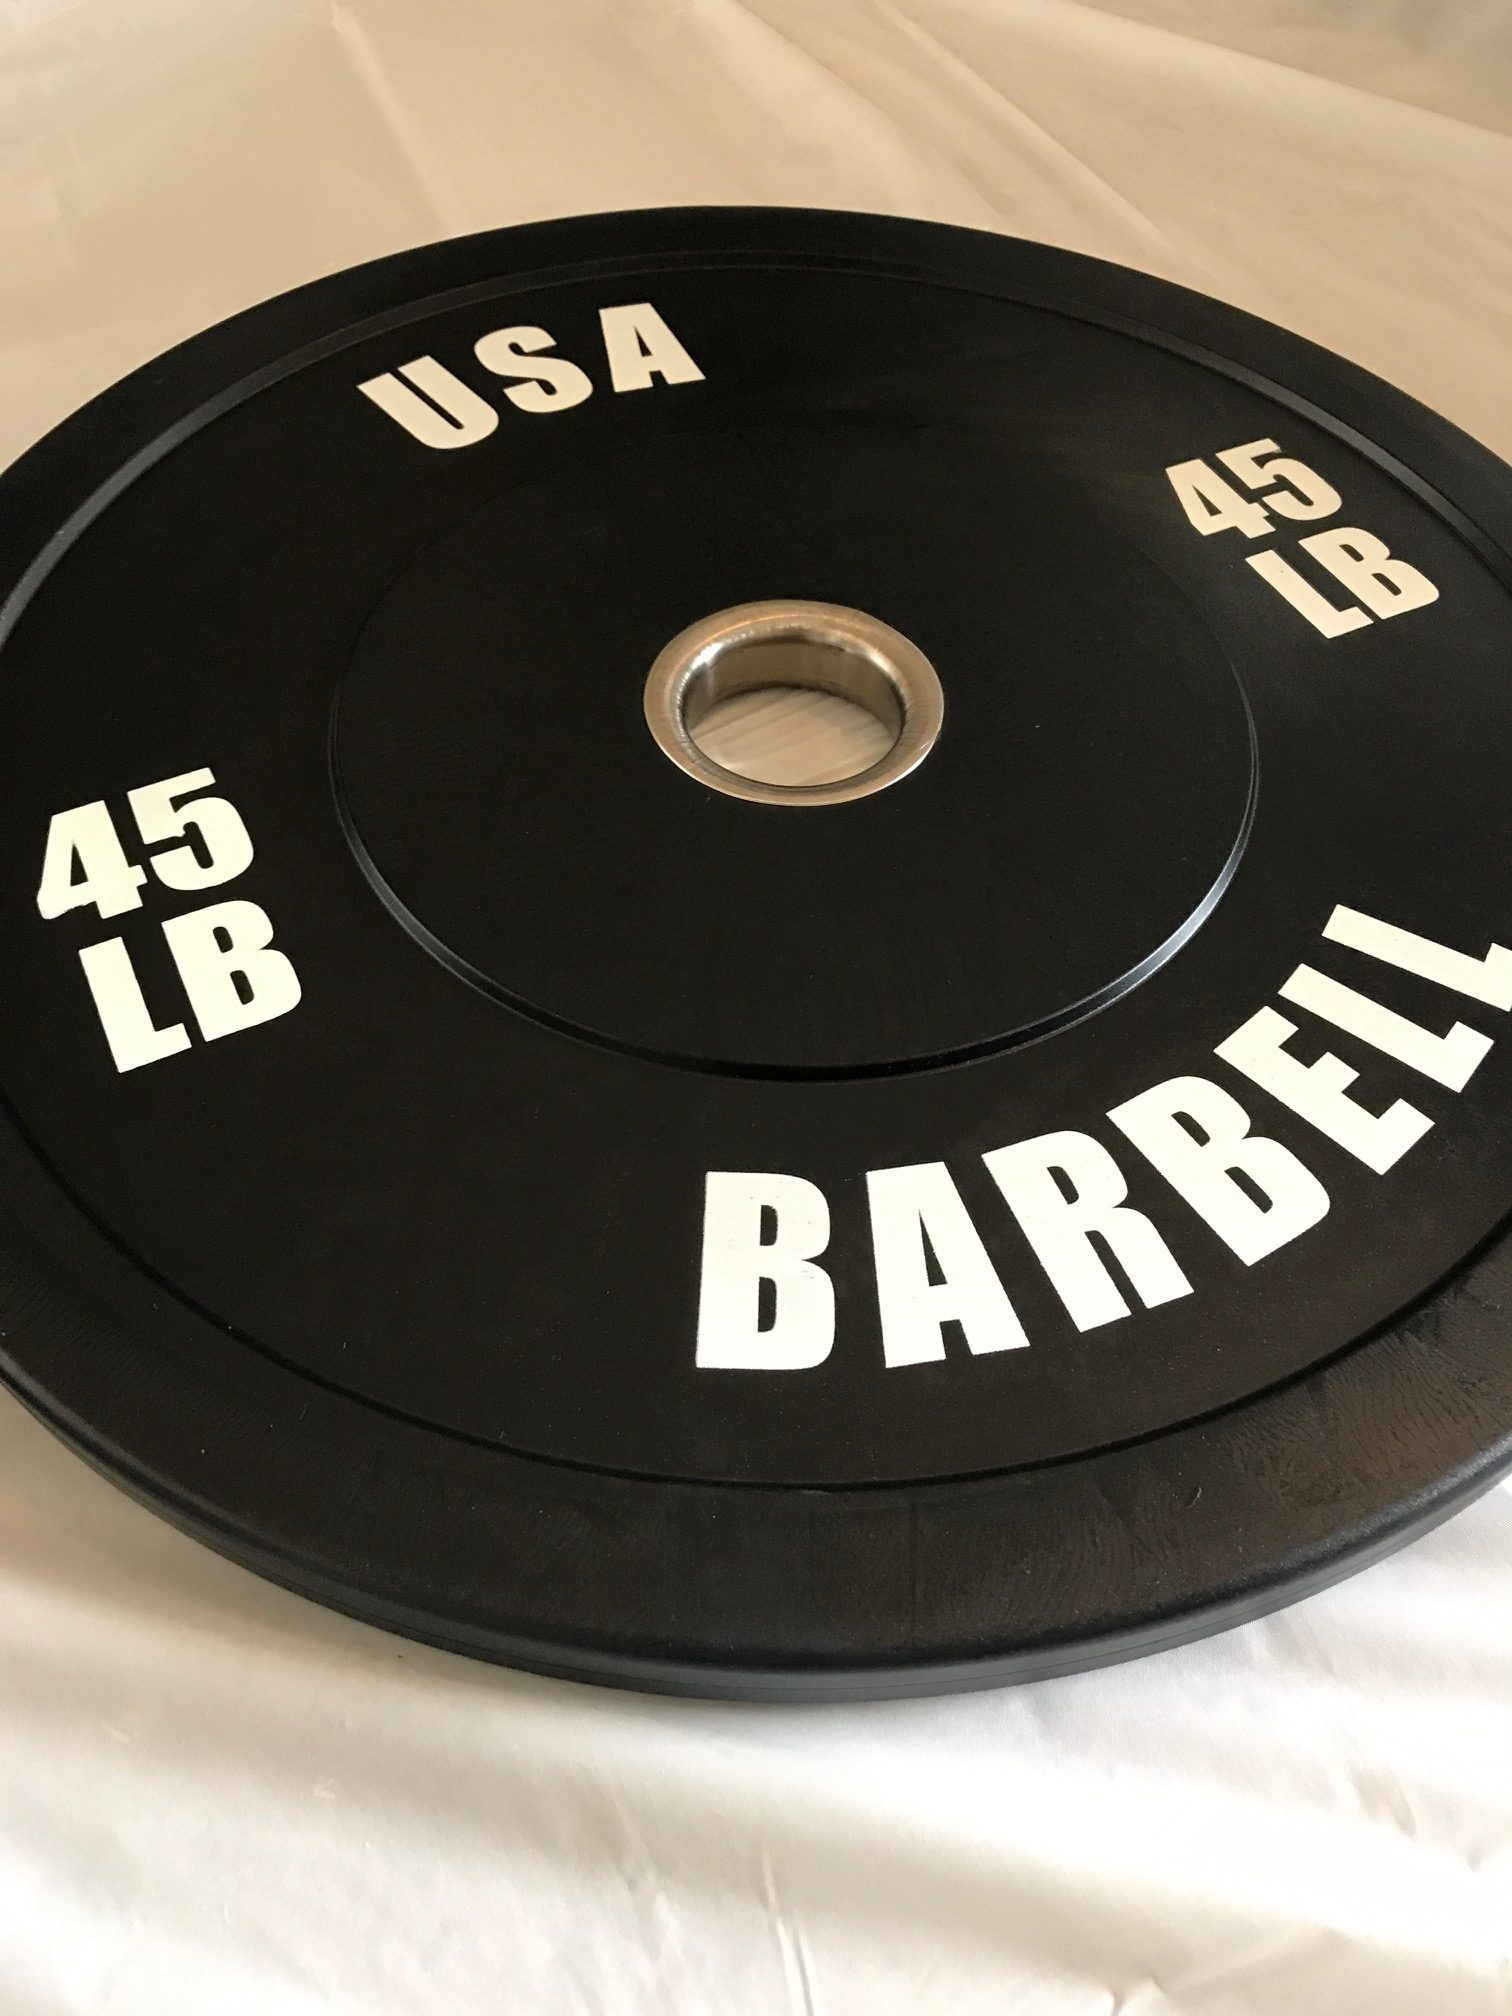 Bumper Plates For Sale >> Studio Series - Best Black Bumper Plates 2 Pair | Best Black Bumper Plates Studio Series™ - One ...